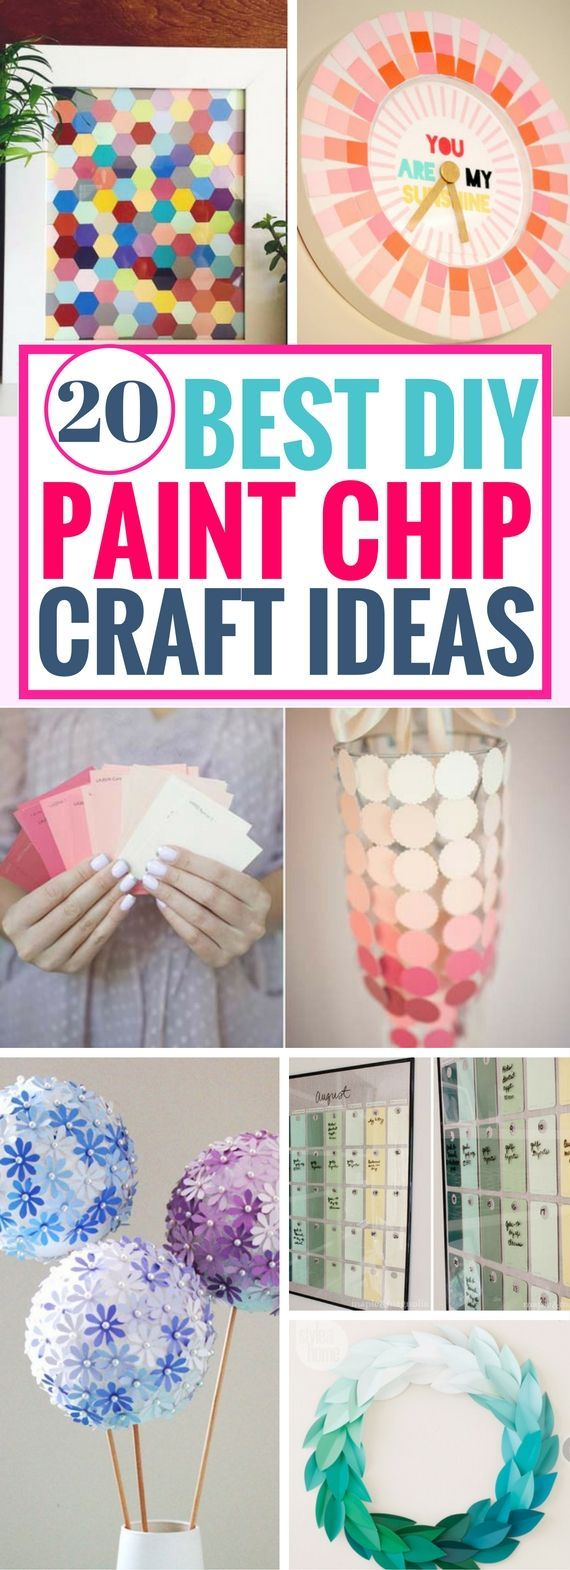 20 Finest Paint Chips Craft Concepts You will Remorse Not Realizing